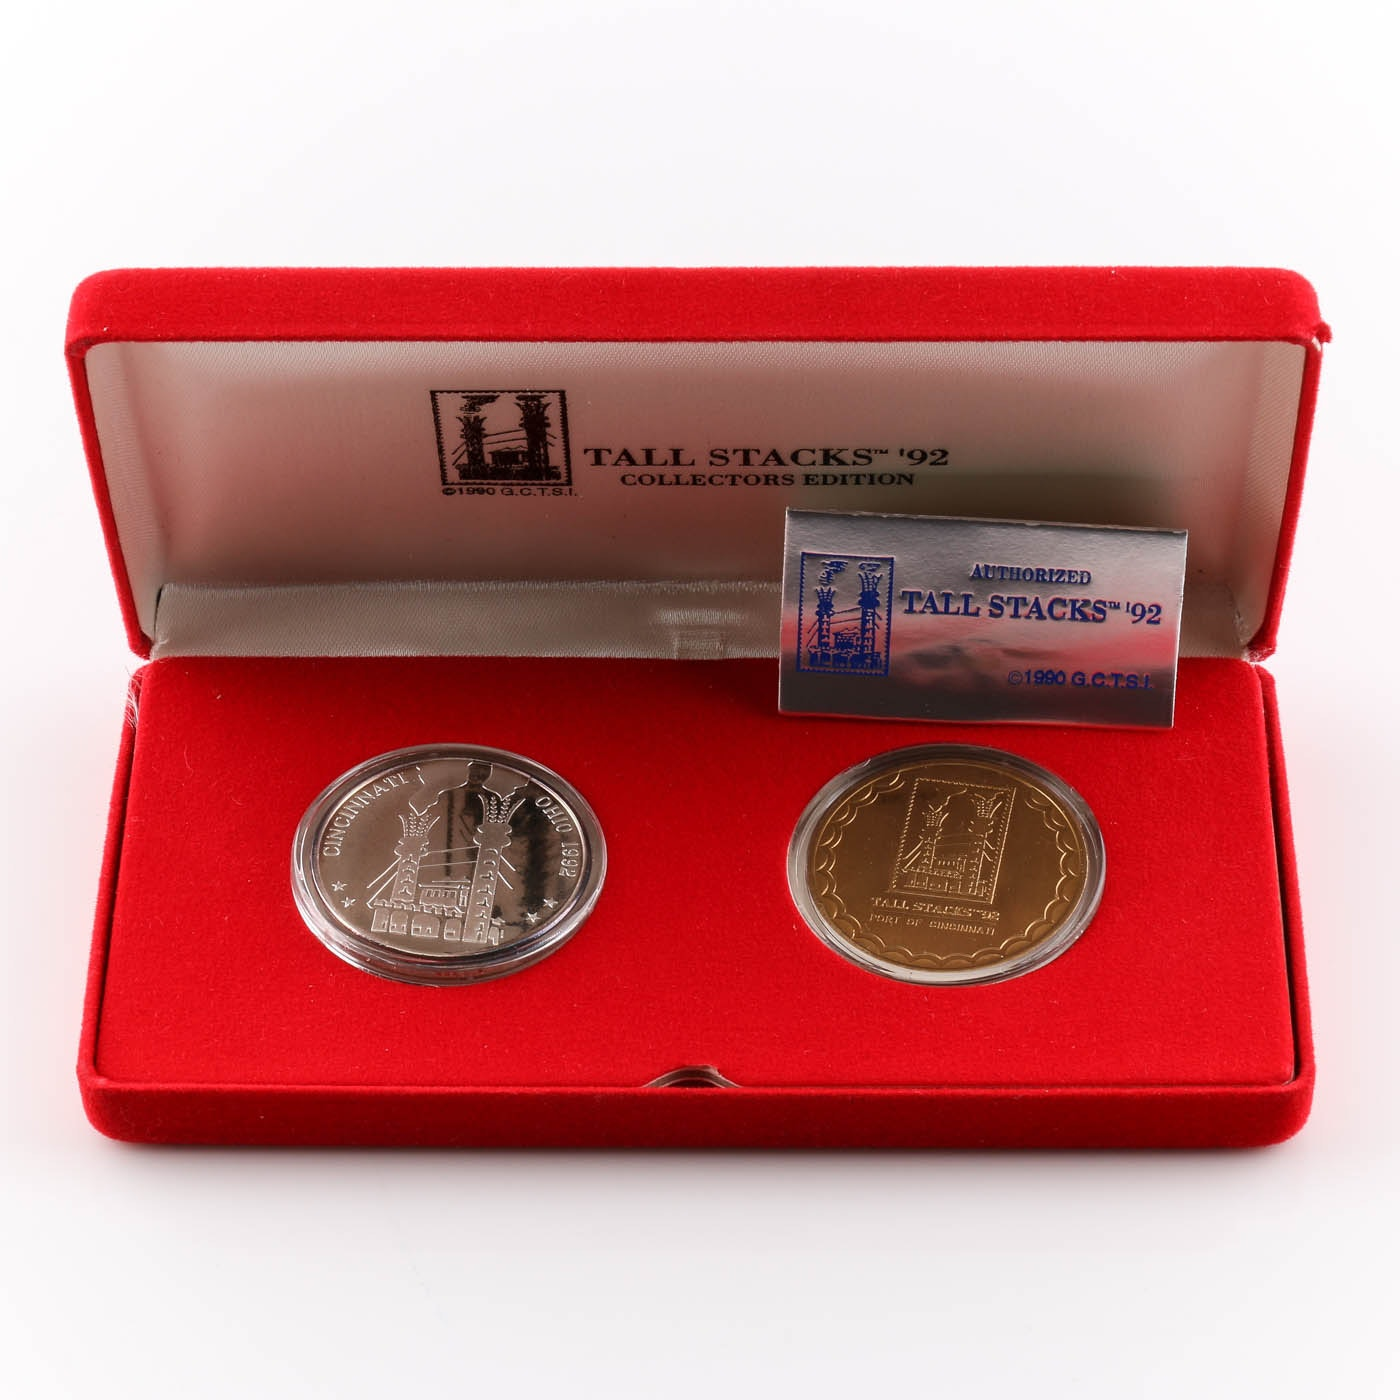 1992 Tall Stacks Collector's Edition Medal Set